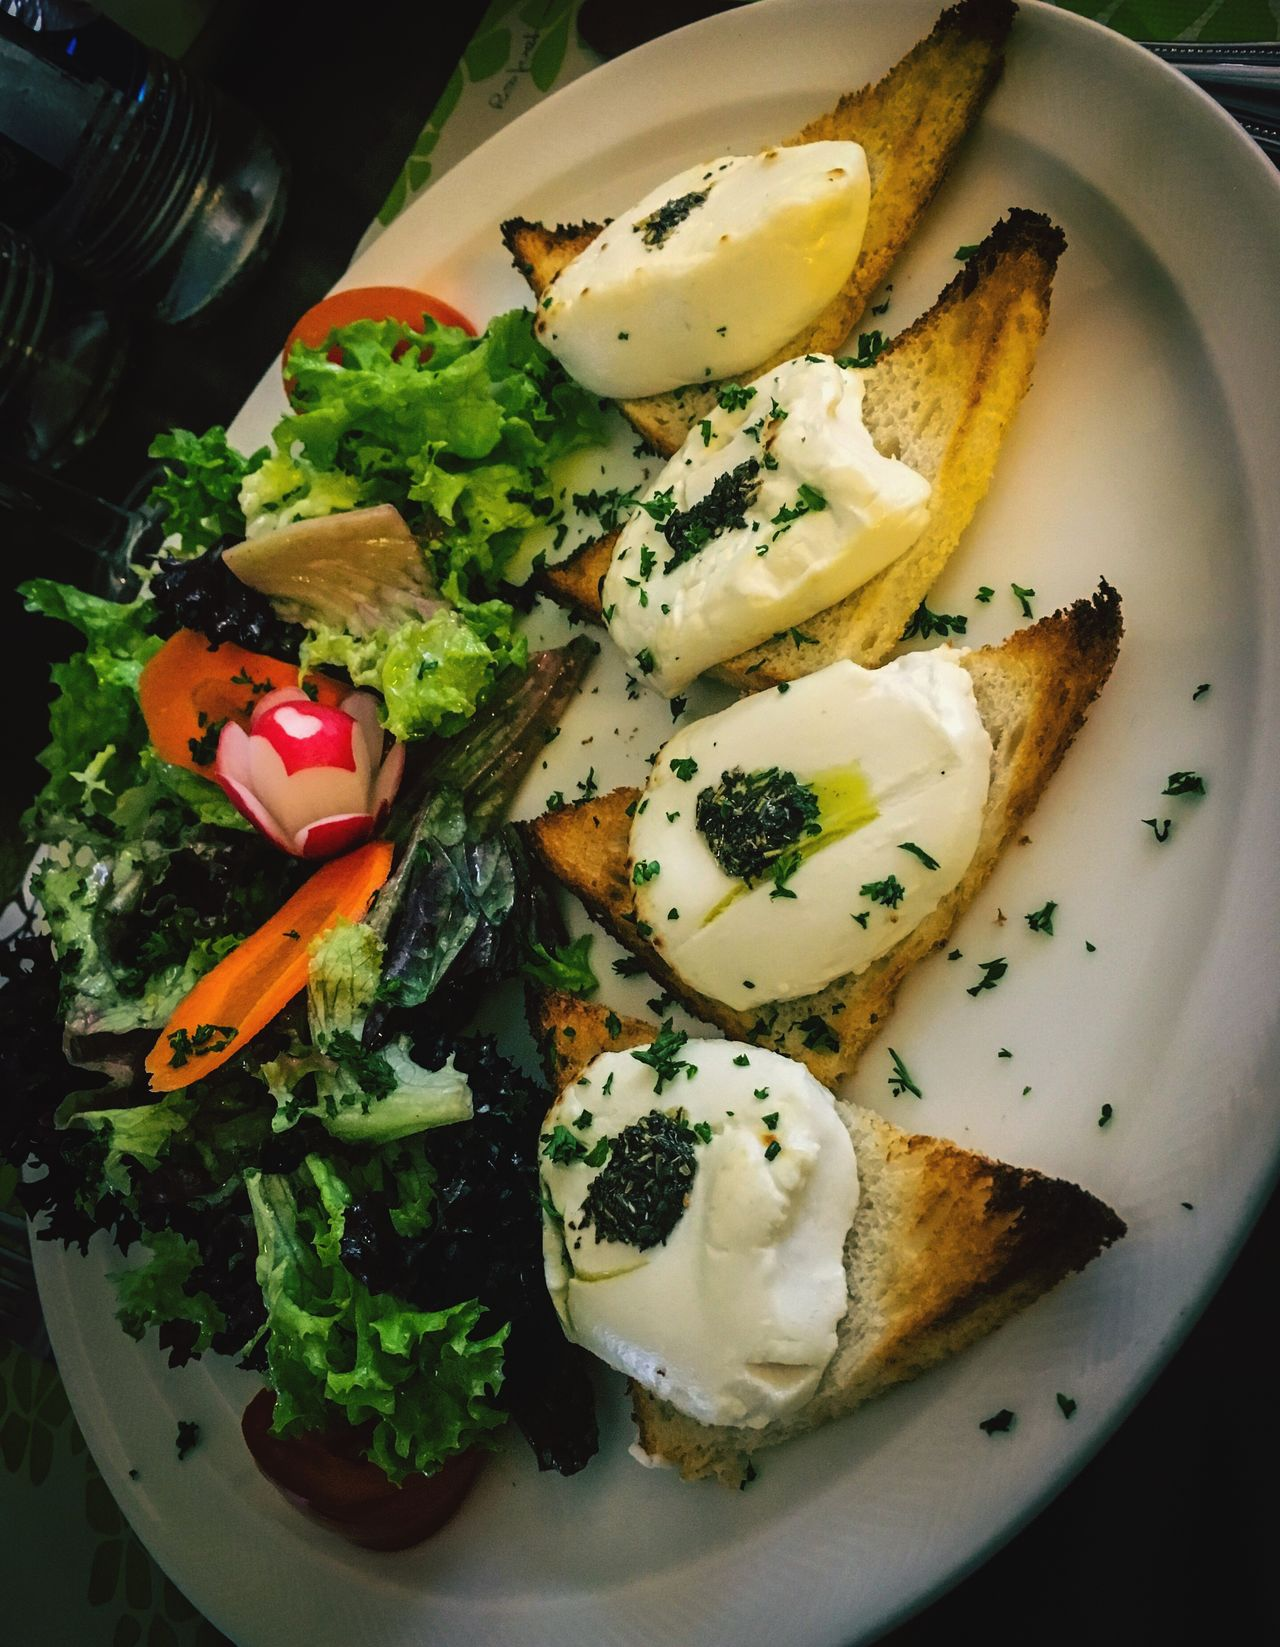 Healthy Eating Food And Drink Food Plate Vegetable Freshness Salad Serving Size No People Ready-to-eat Chevre  Toast🍞 Toastbread Lettuce Fromage Queijo